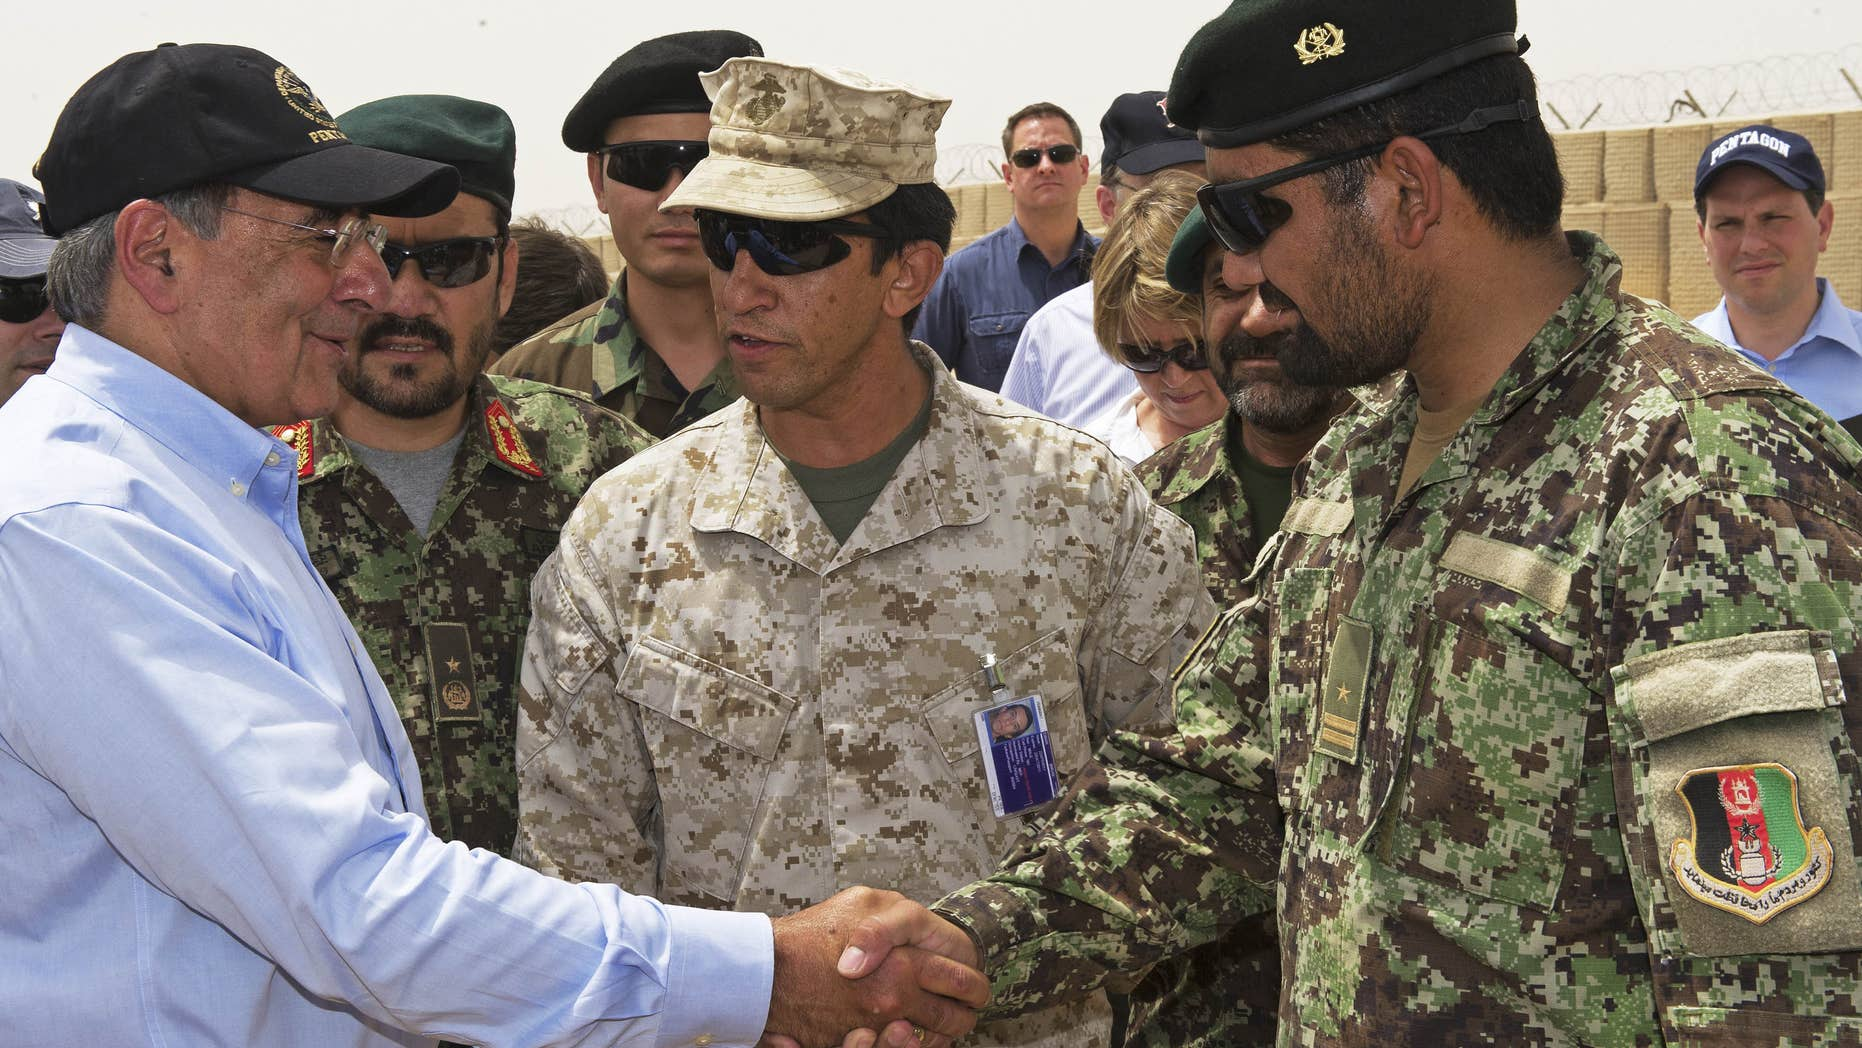 July 10: US Secretary of Defense Leon Panetta greets an Afghan military leader as he makes an unannounced visit to Camp Dwyer, in southern Afghanistan.